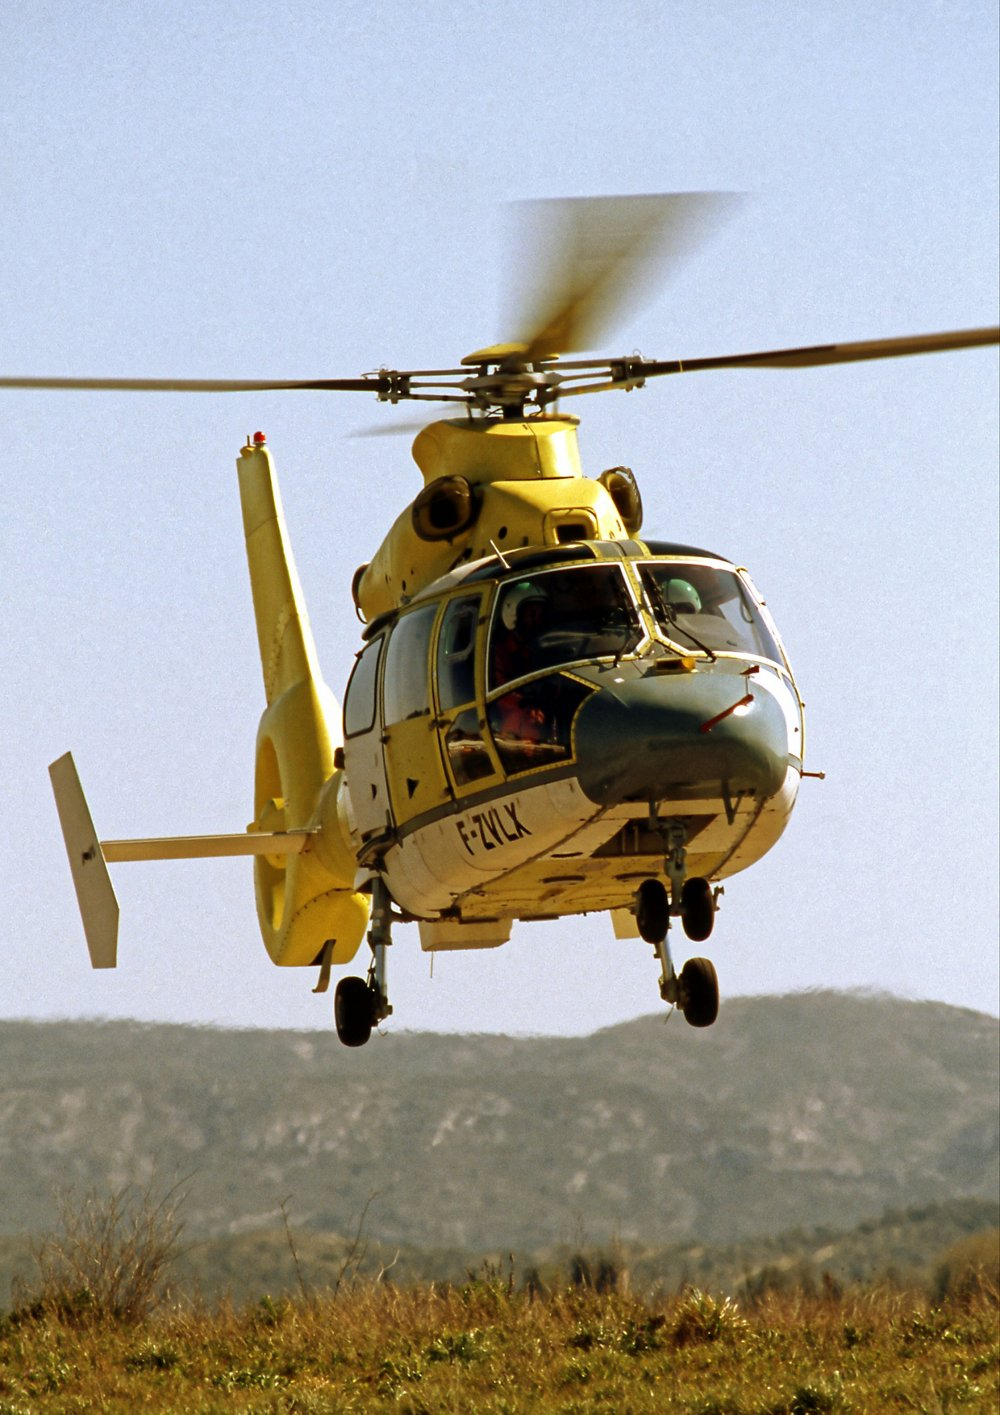 The AS365 N3, a high-performance version of the Dauphin helicopter, performed its maiden flight in 1996.